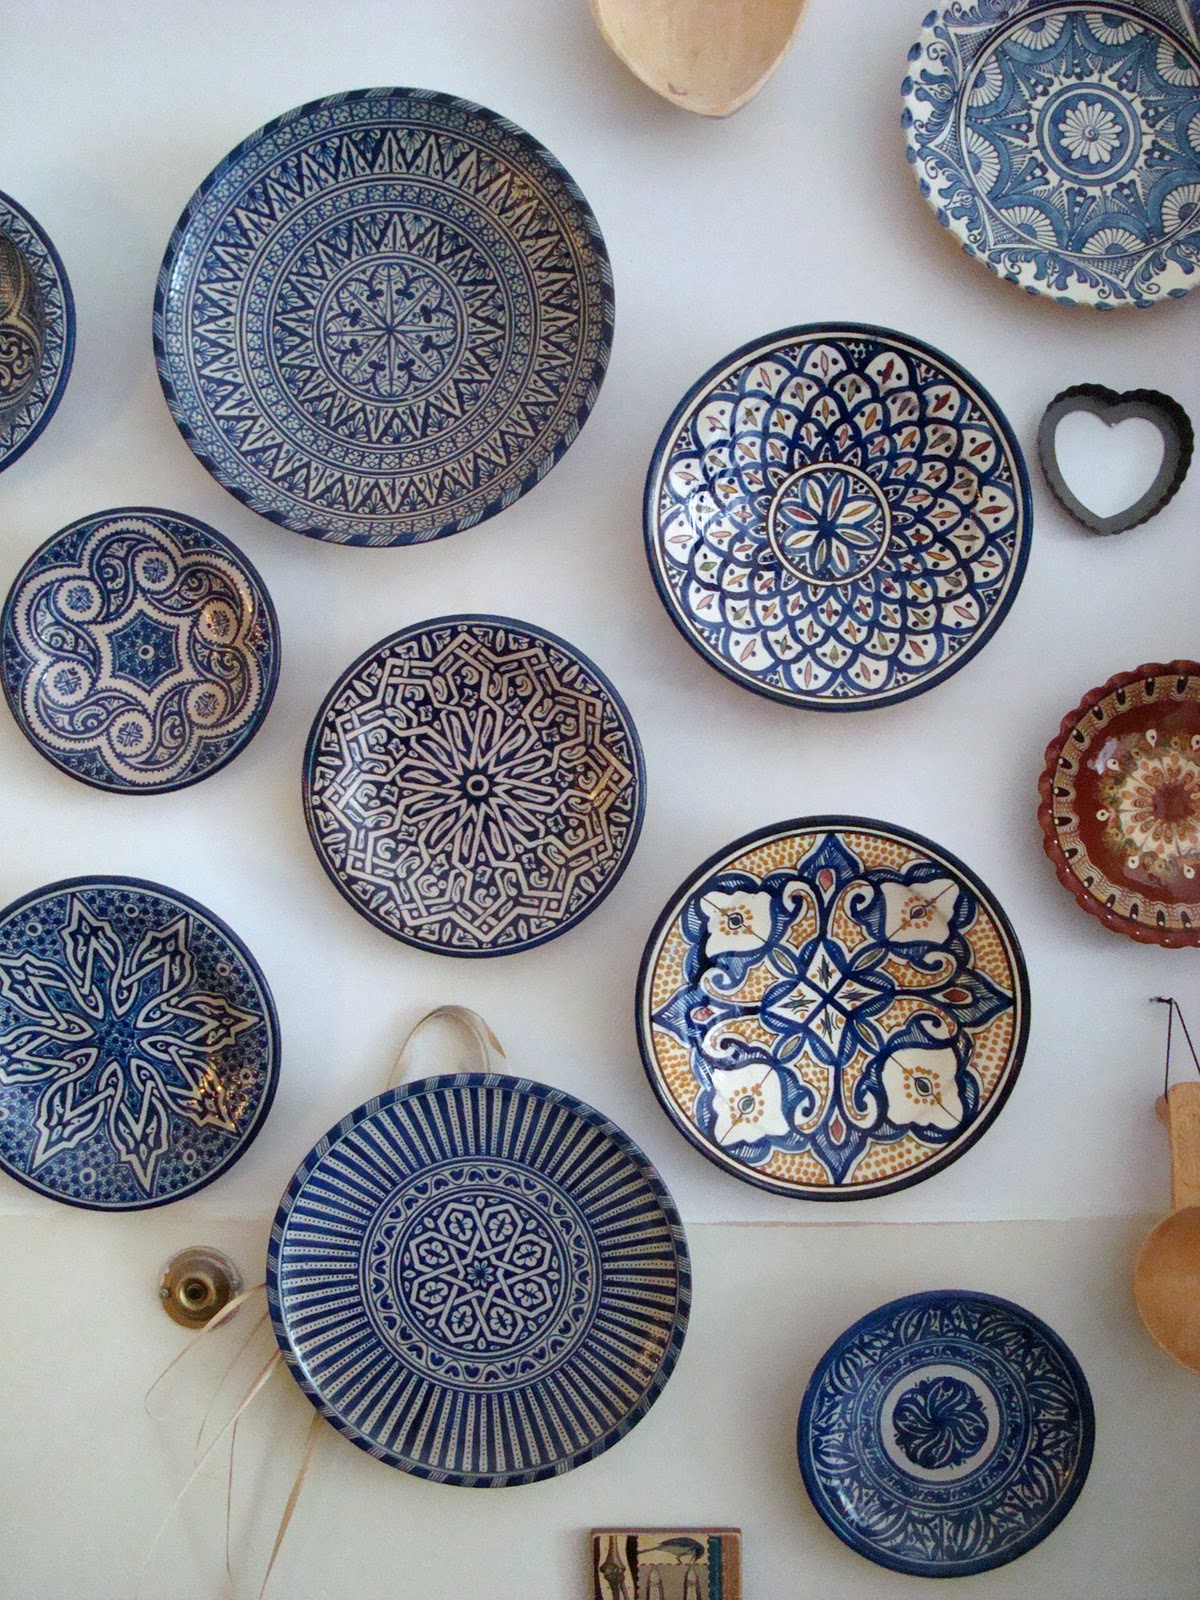 Amidst the wall of blue-patterned plates is a brown plate that was a gift from Bulgaria some wooden spoons that I bought in Romania and a small piece from ... & ART u0026 INSPIRATION: Moroccan Pottery - Collecting